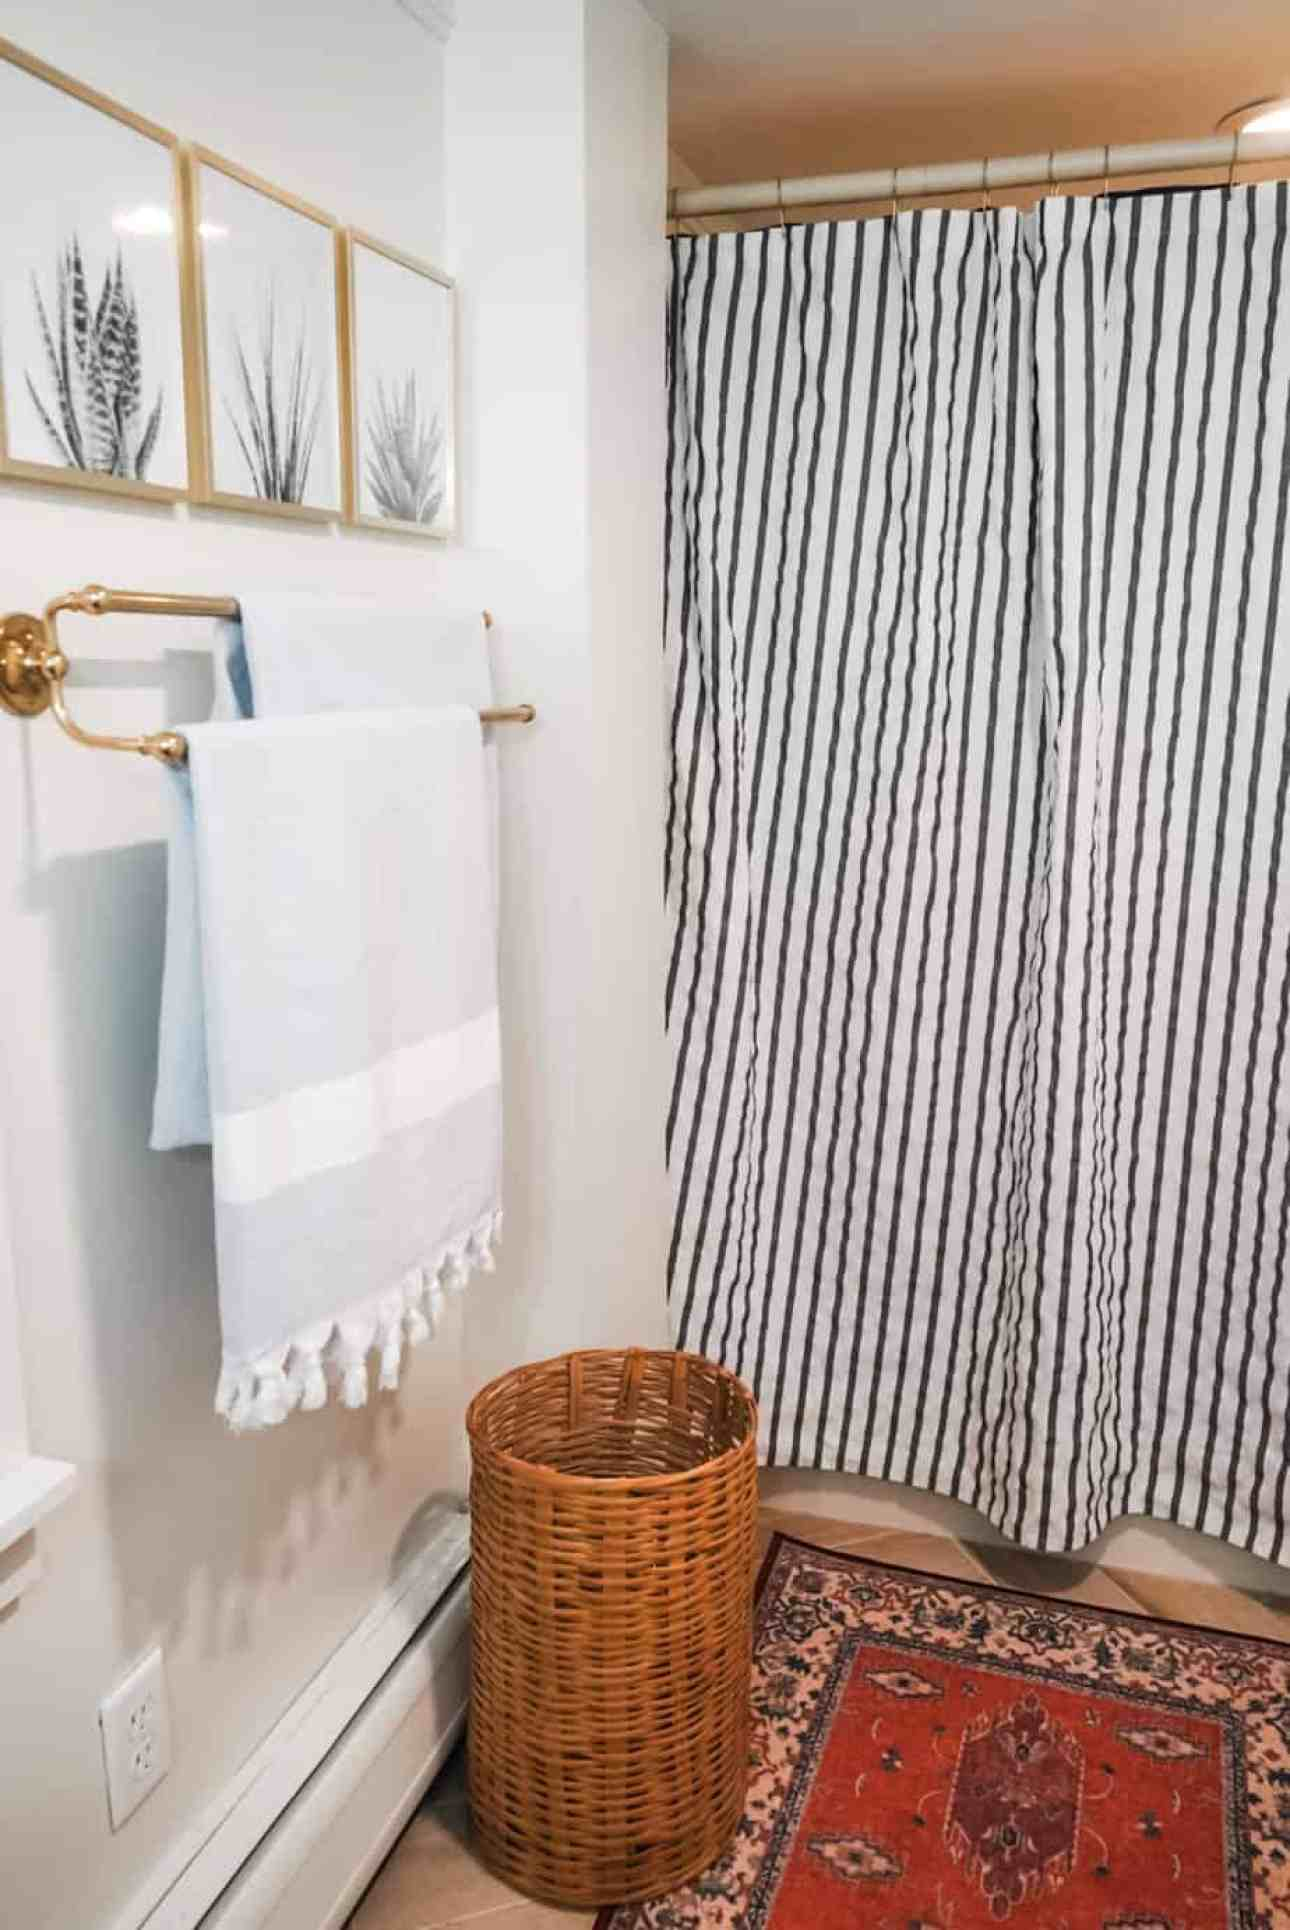 Blue and white shower curtain and towels, with three pictures on the wall and a wicker clothing hamper underneath the towel rack.